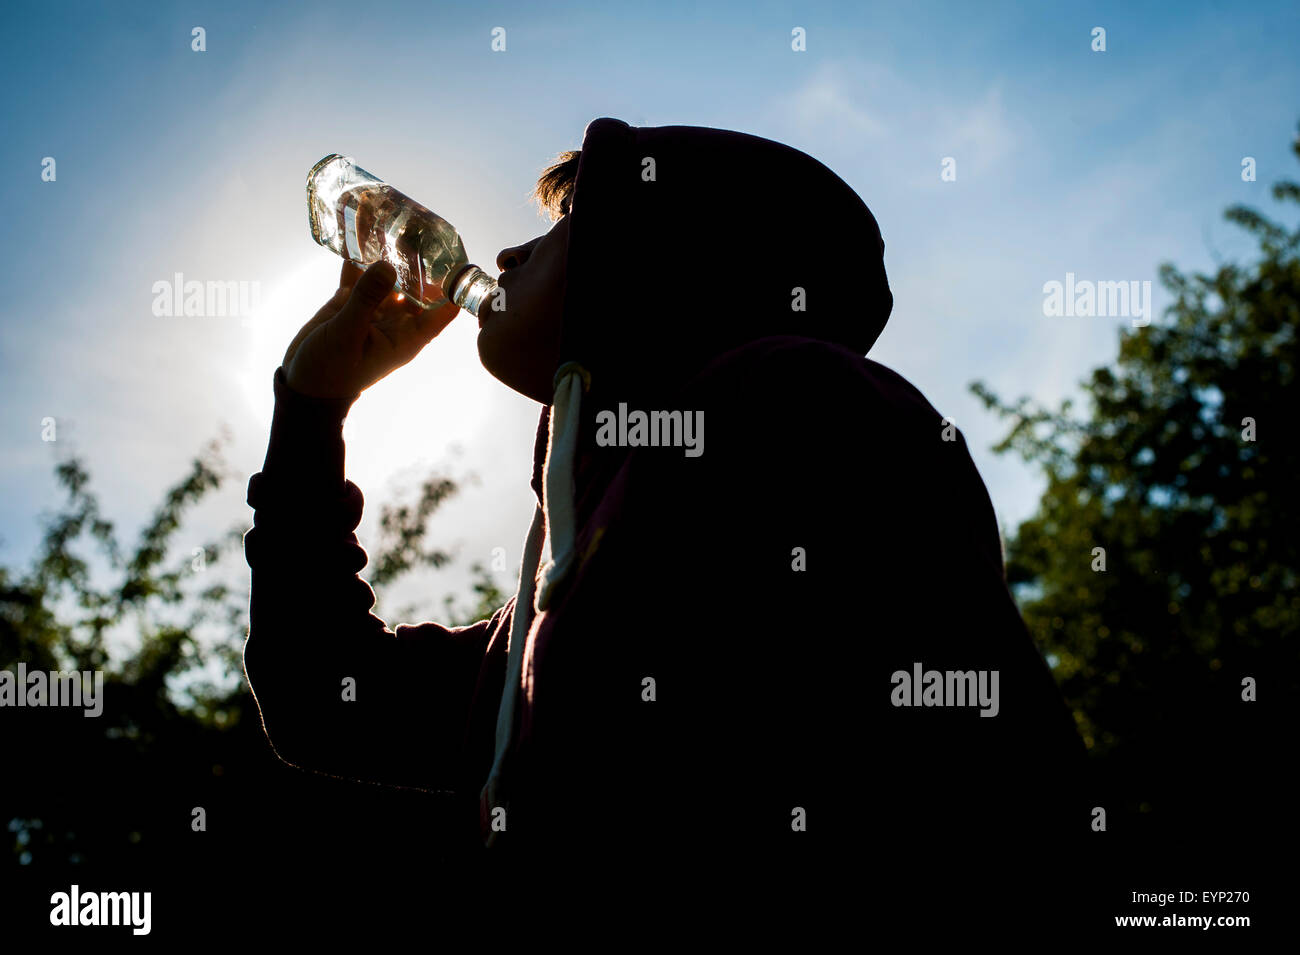 Teenager with Vodka. - Stock Image